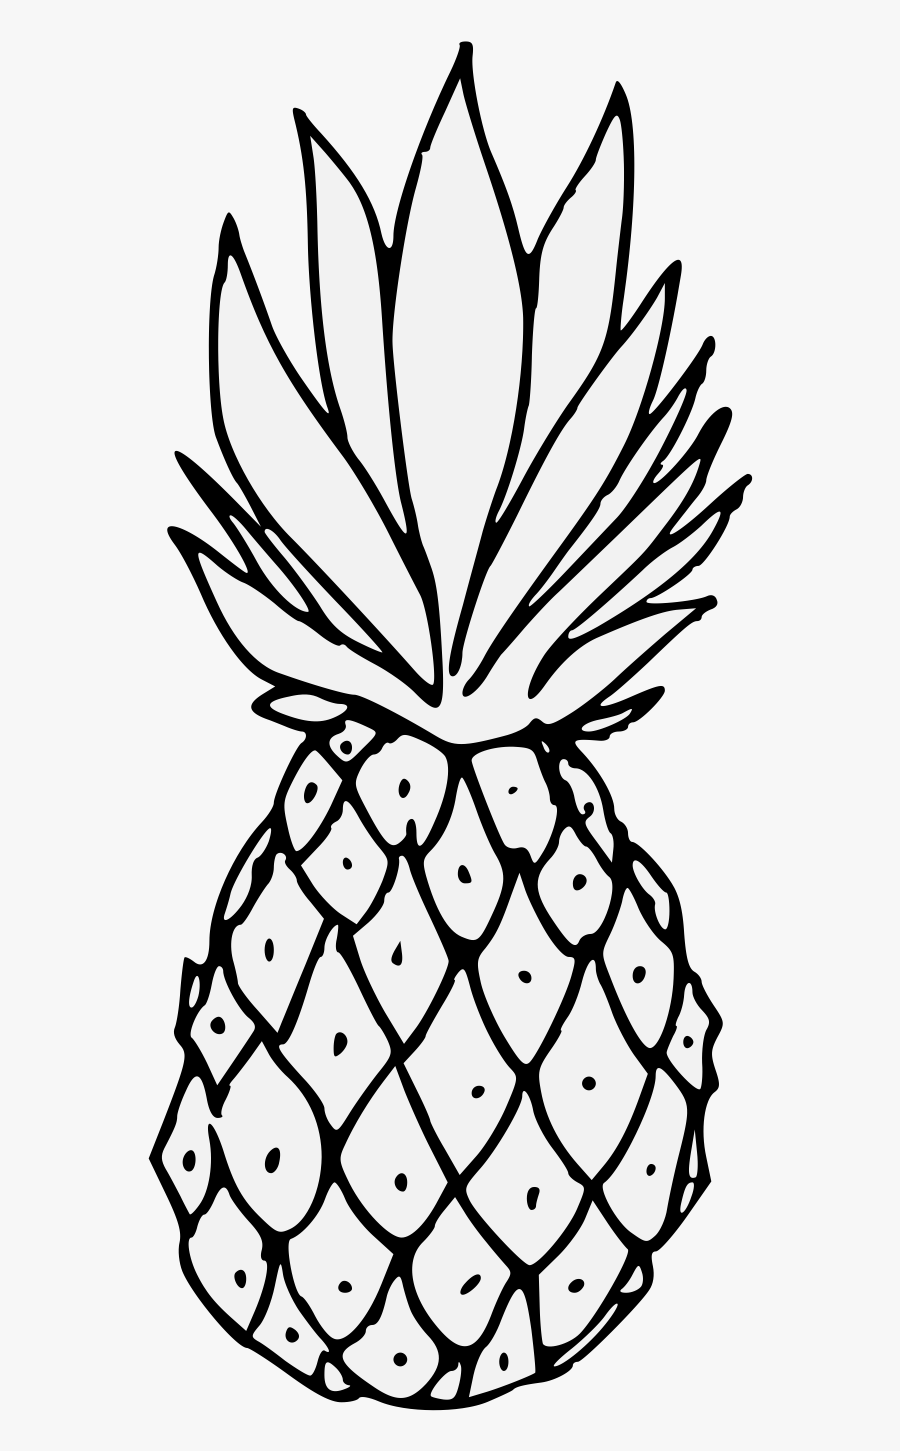 Pineapple Png Black And White , Free Transparent Clipart.